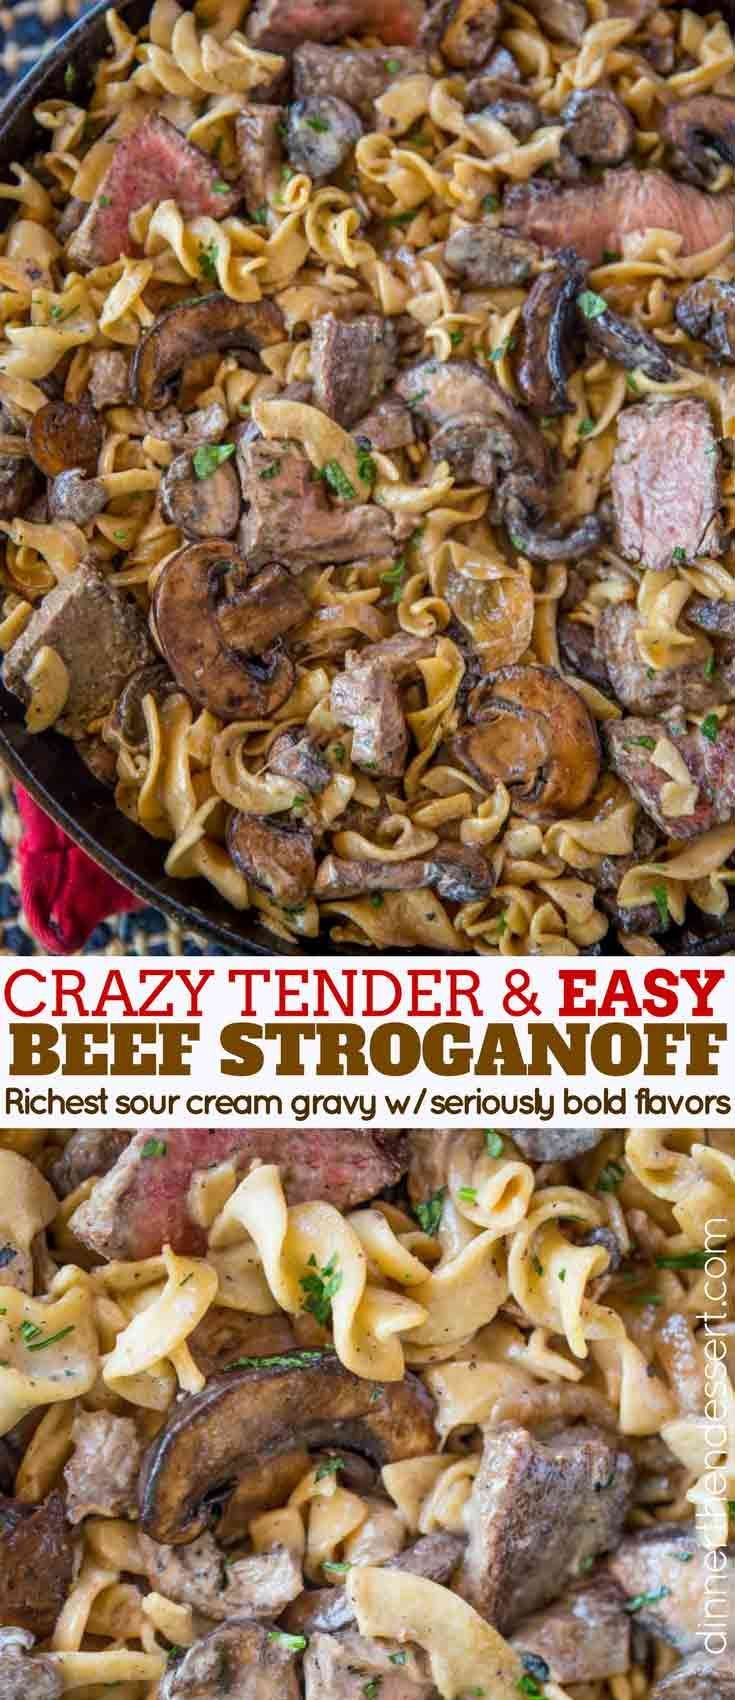 Quick and EASY Beef Stroganoff with a creamy sour cream mushroom gravy, egg noodles and crazy tender steak that's still cooked to a medium doneness, it's the perfect weeknight meal!